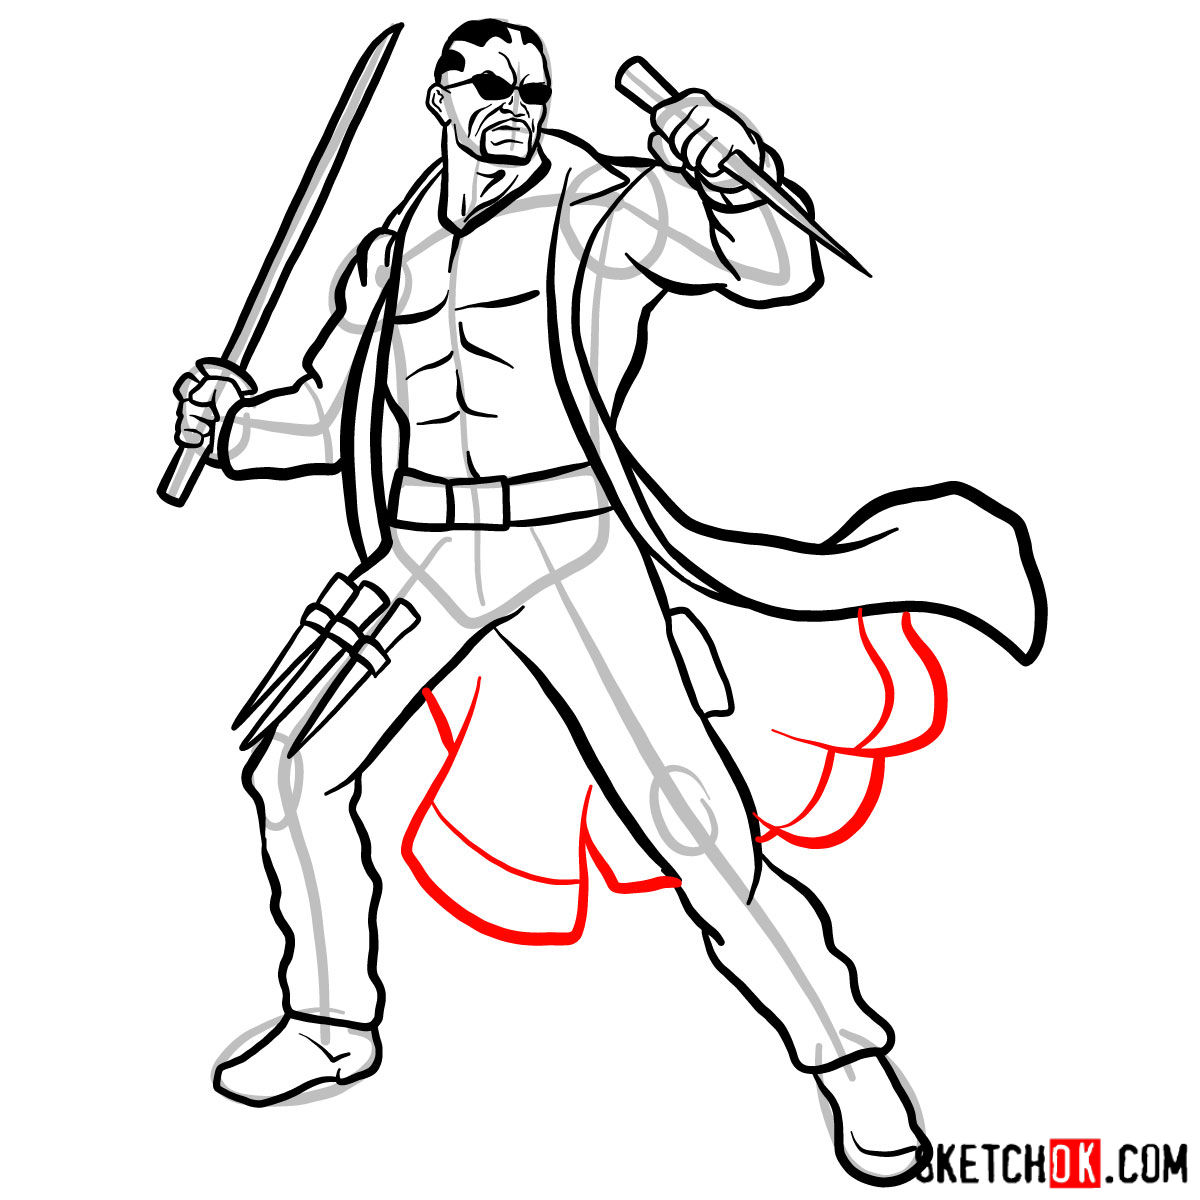 How to draw Blade from Marvel Comics - step 15